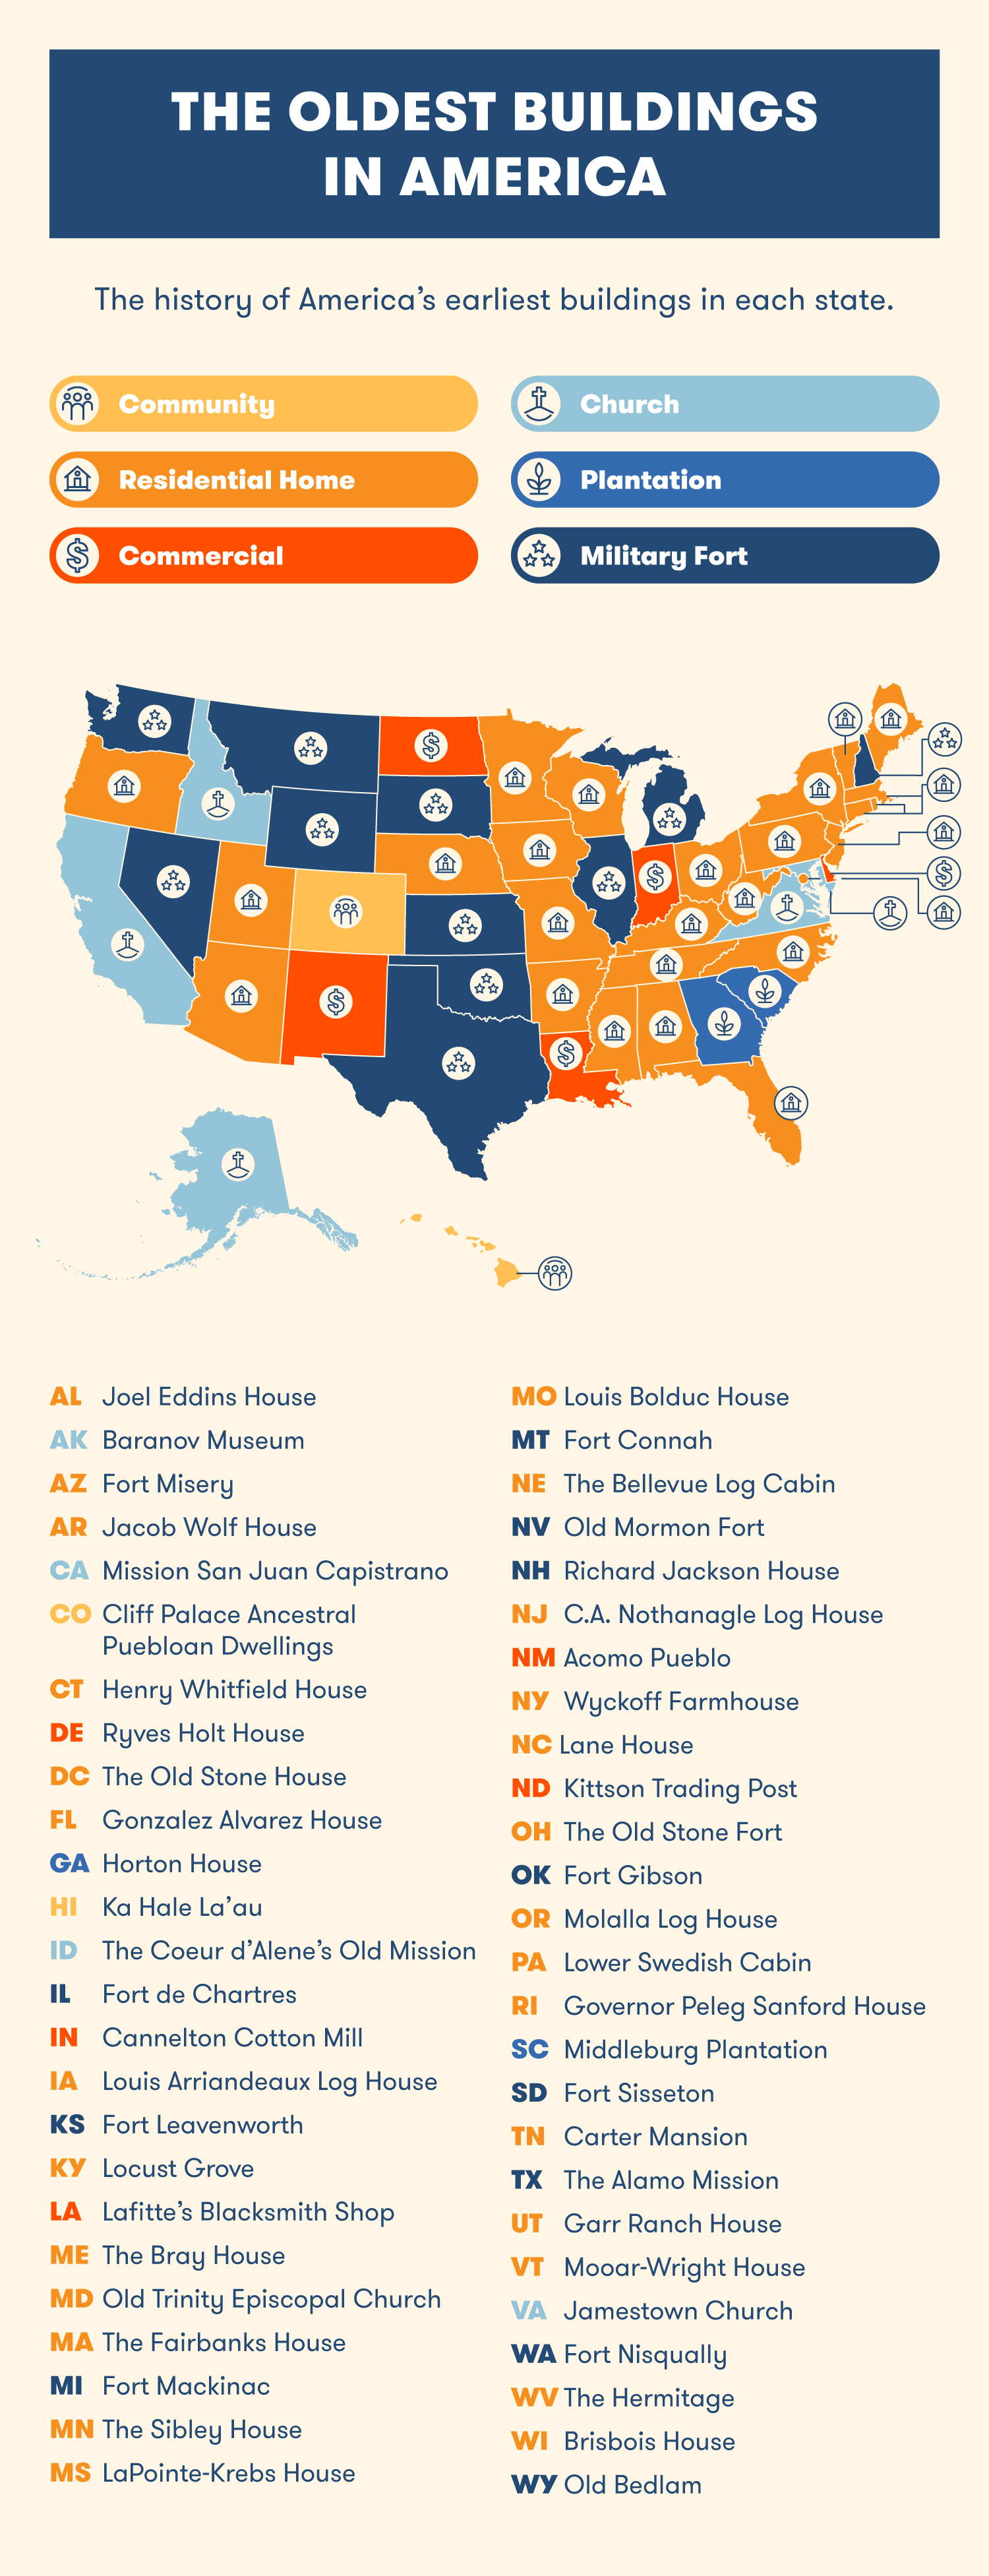 The oldest buildings in America (in each state)